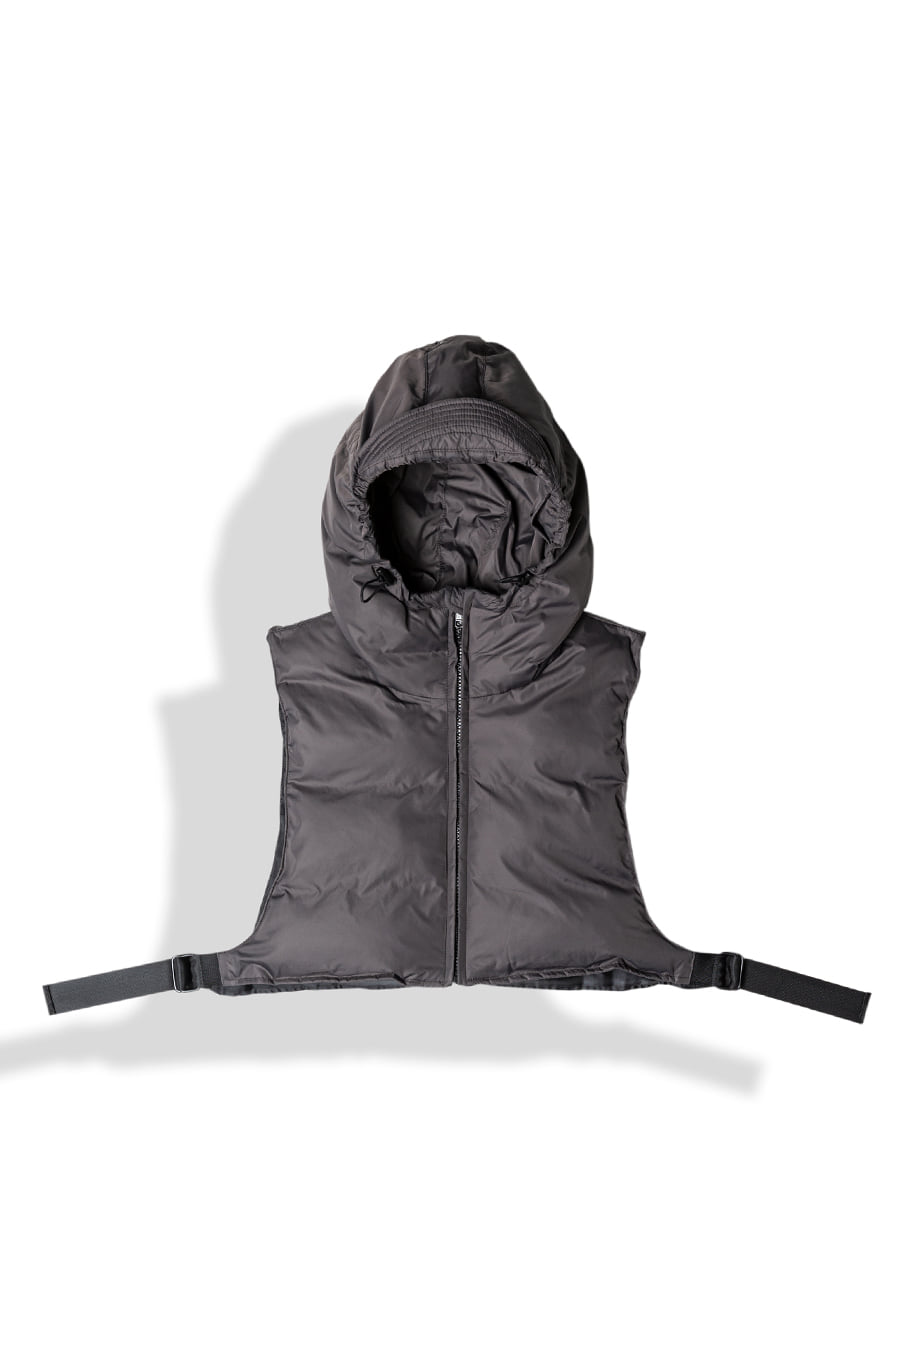 DOWN CROP HOODED-VEST / SMOKEArtittude(아티튜드)12월12일 발송예정